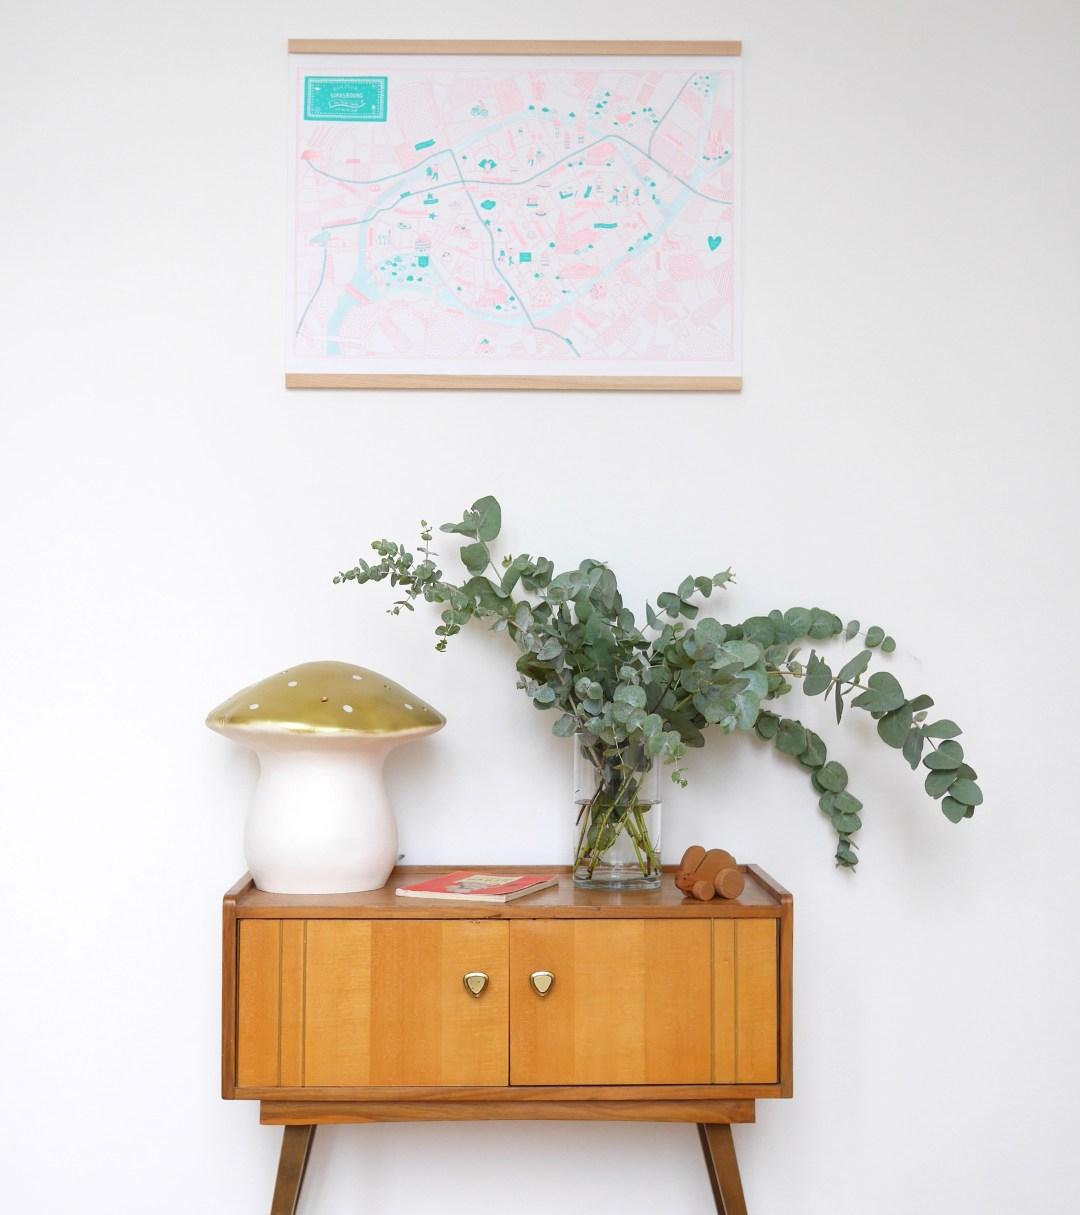 blog-déco-lifestyle-strasbourg-chambre-enfant-woodmoodfood-despetitshaut-gripposter